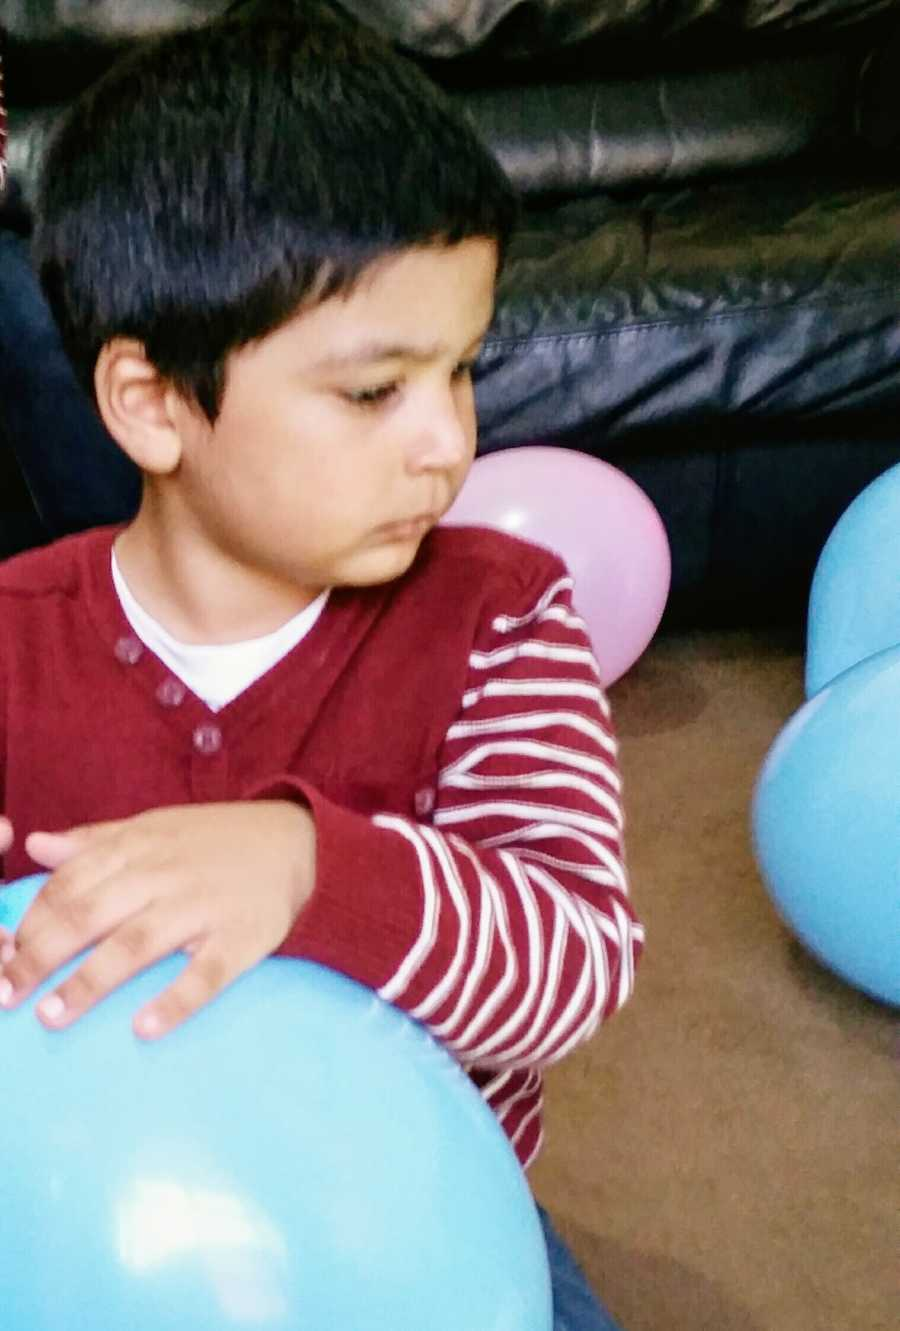 A toddler with nonverbal autism holds a balloon